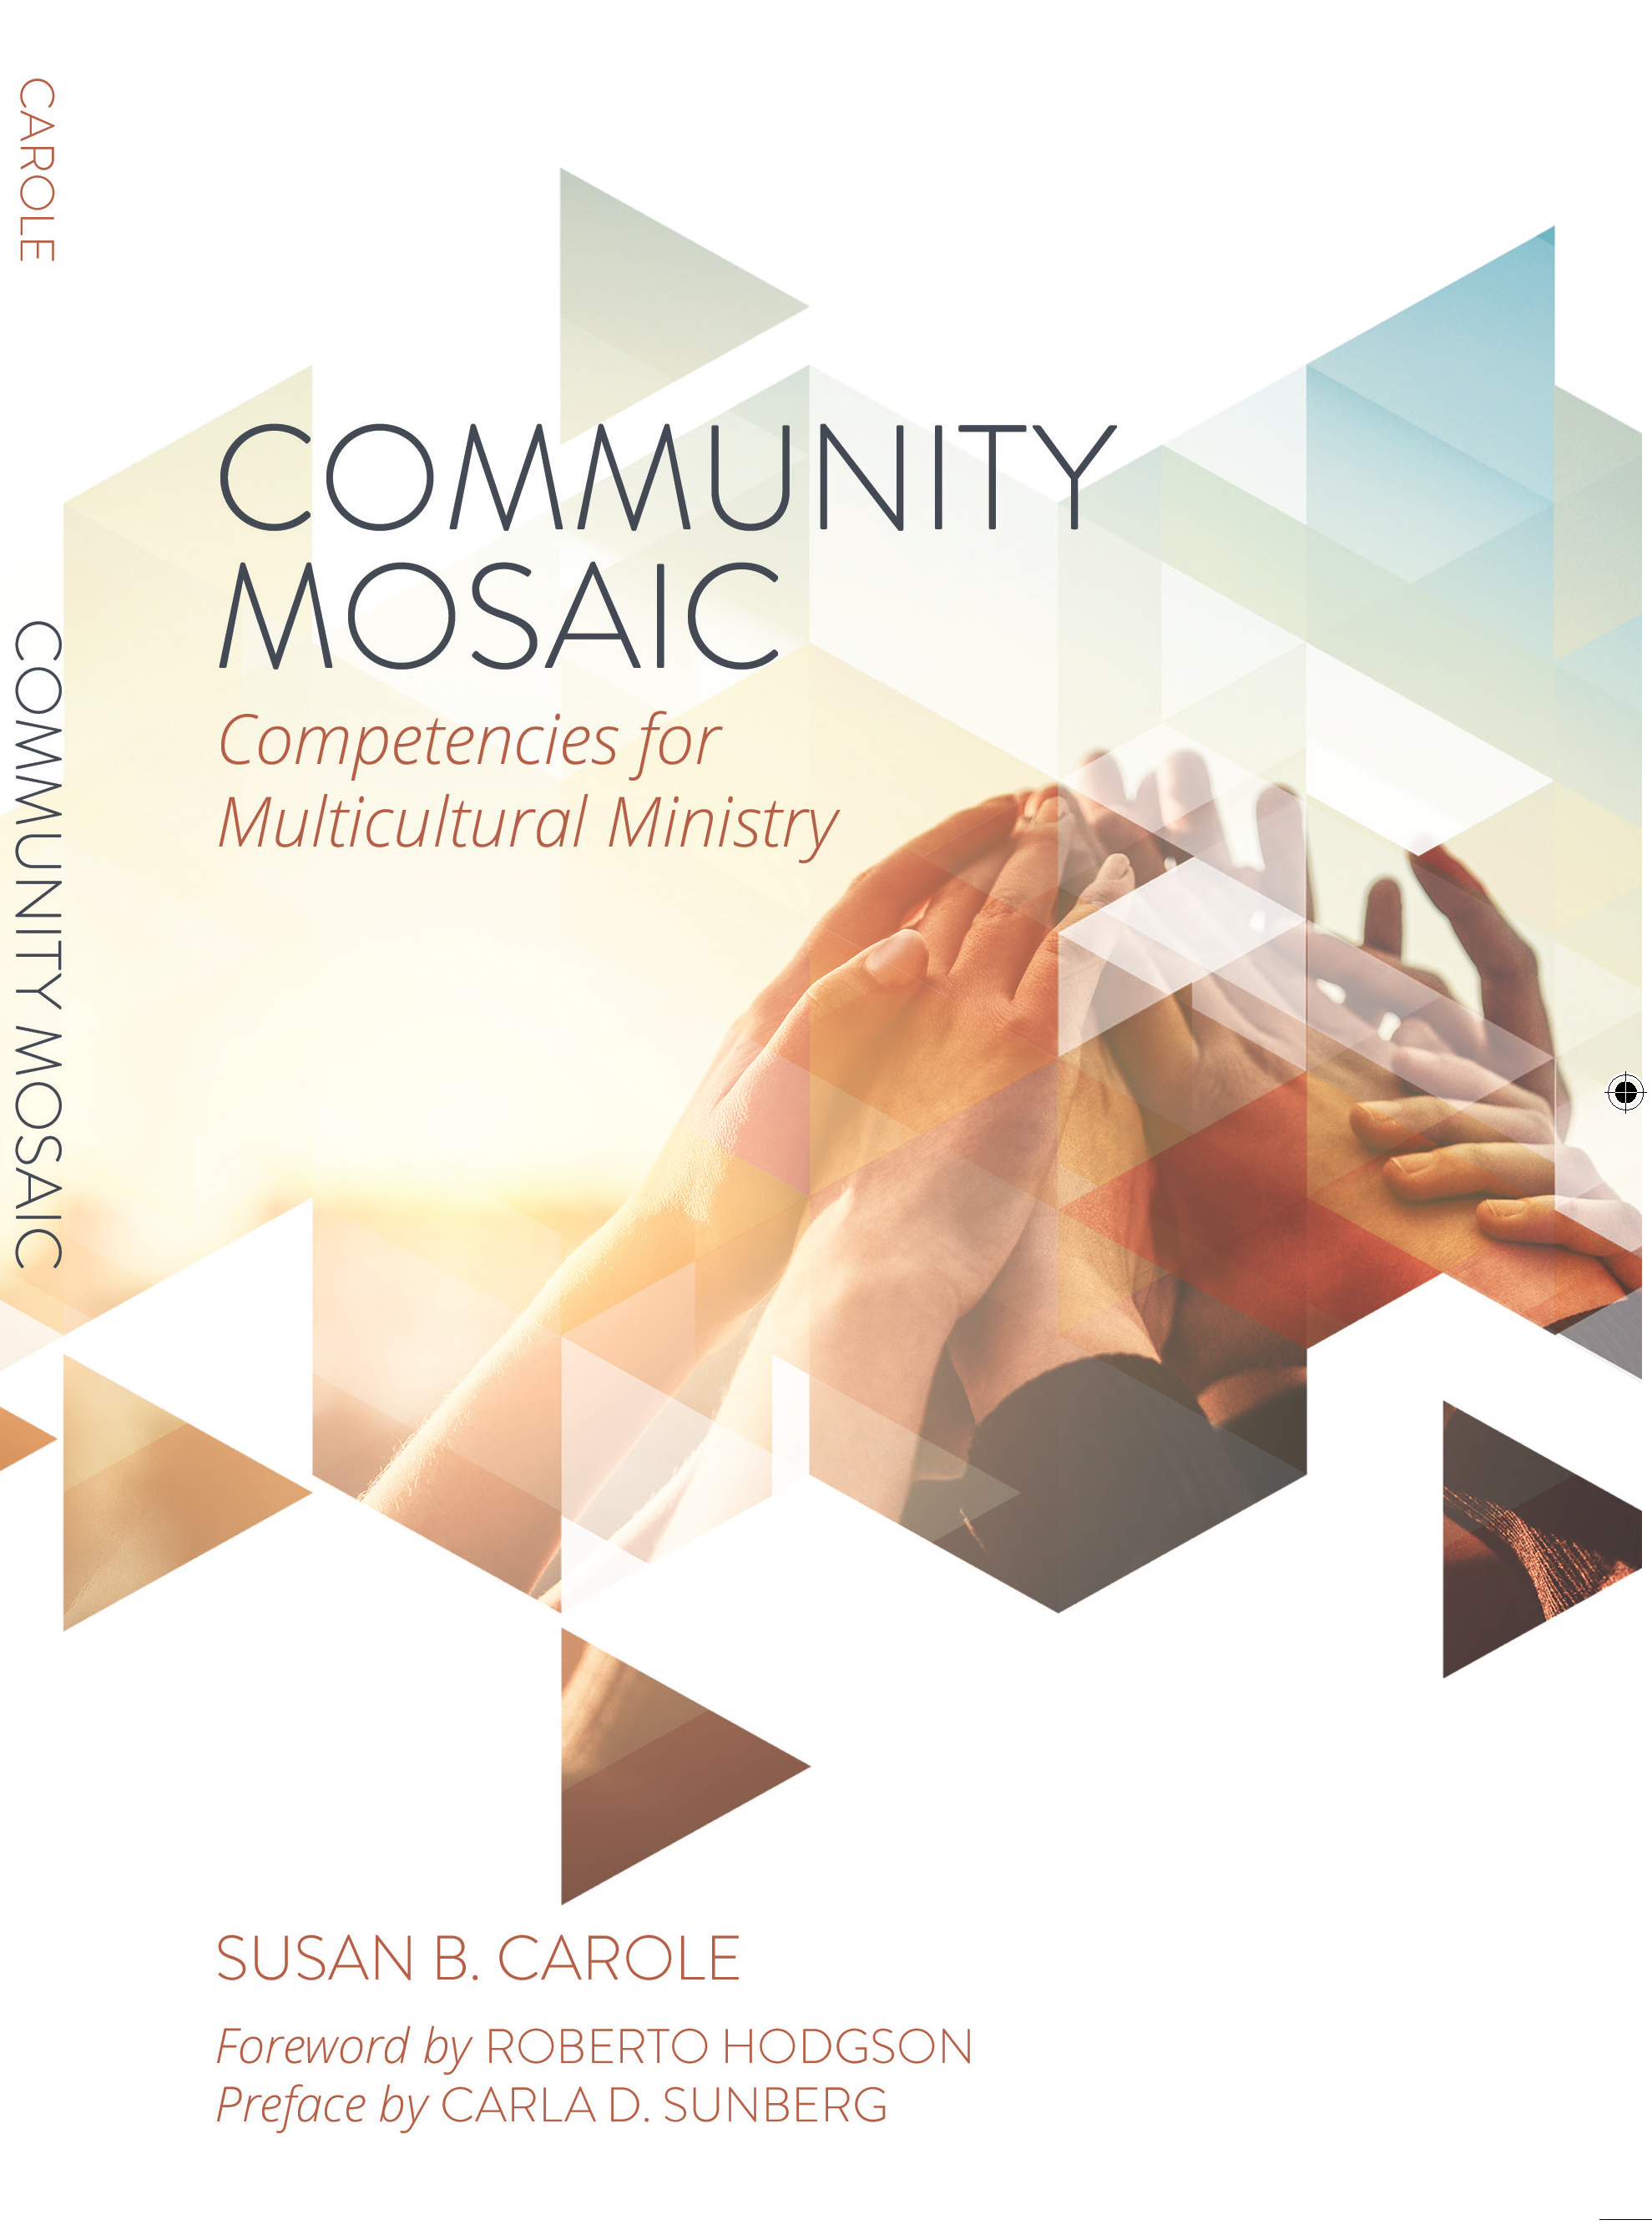 CommunityMosaic front cover